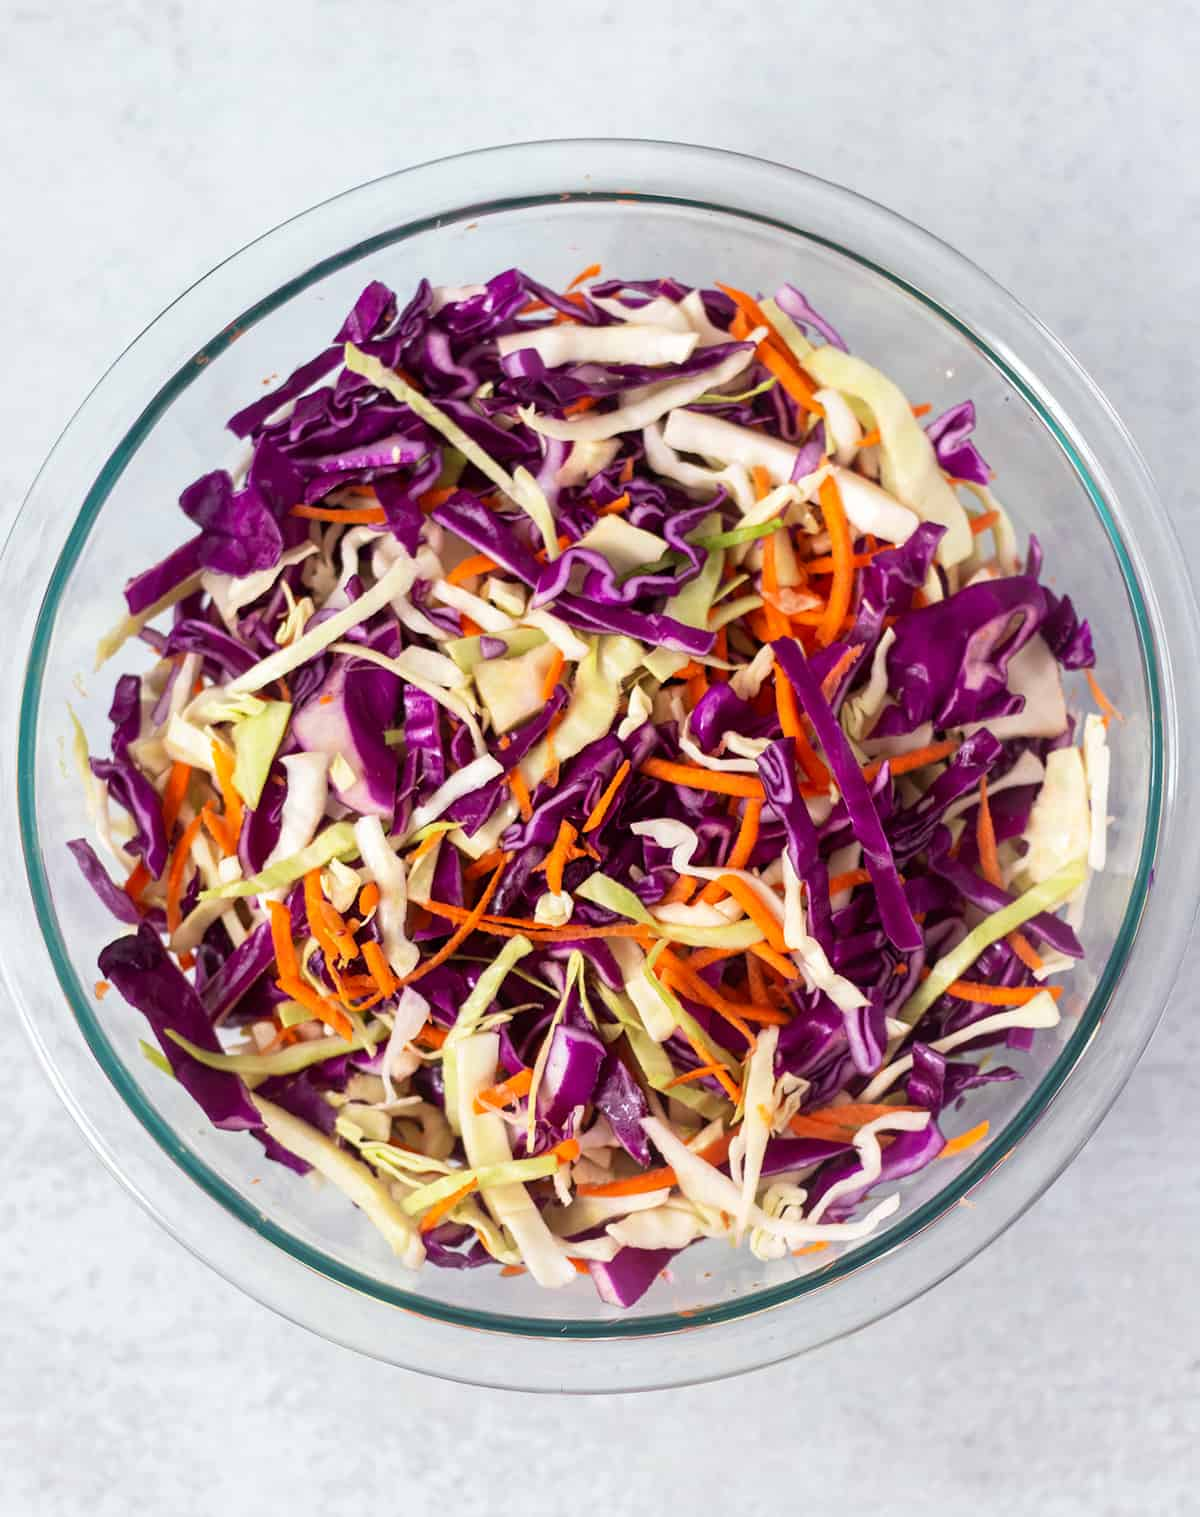 Coleslaw mix for cilantro lime slaw